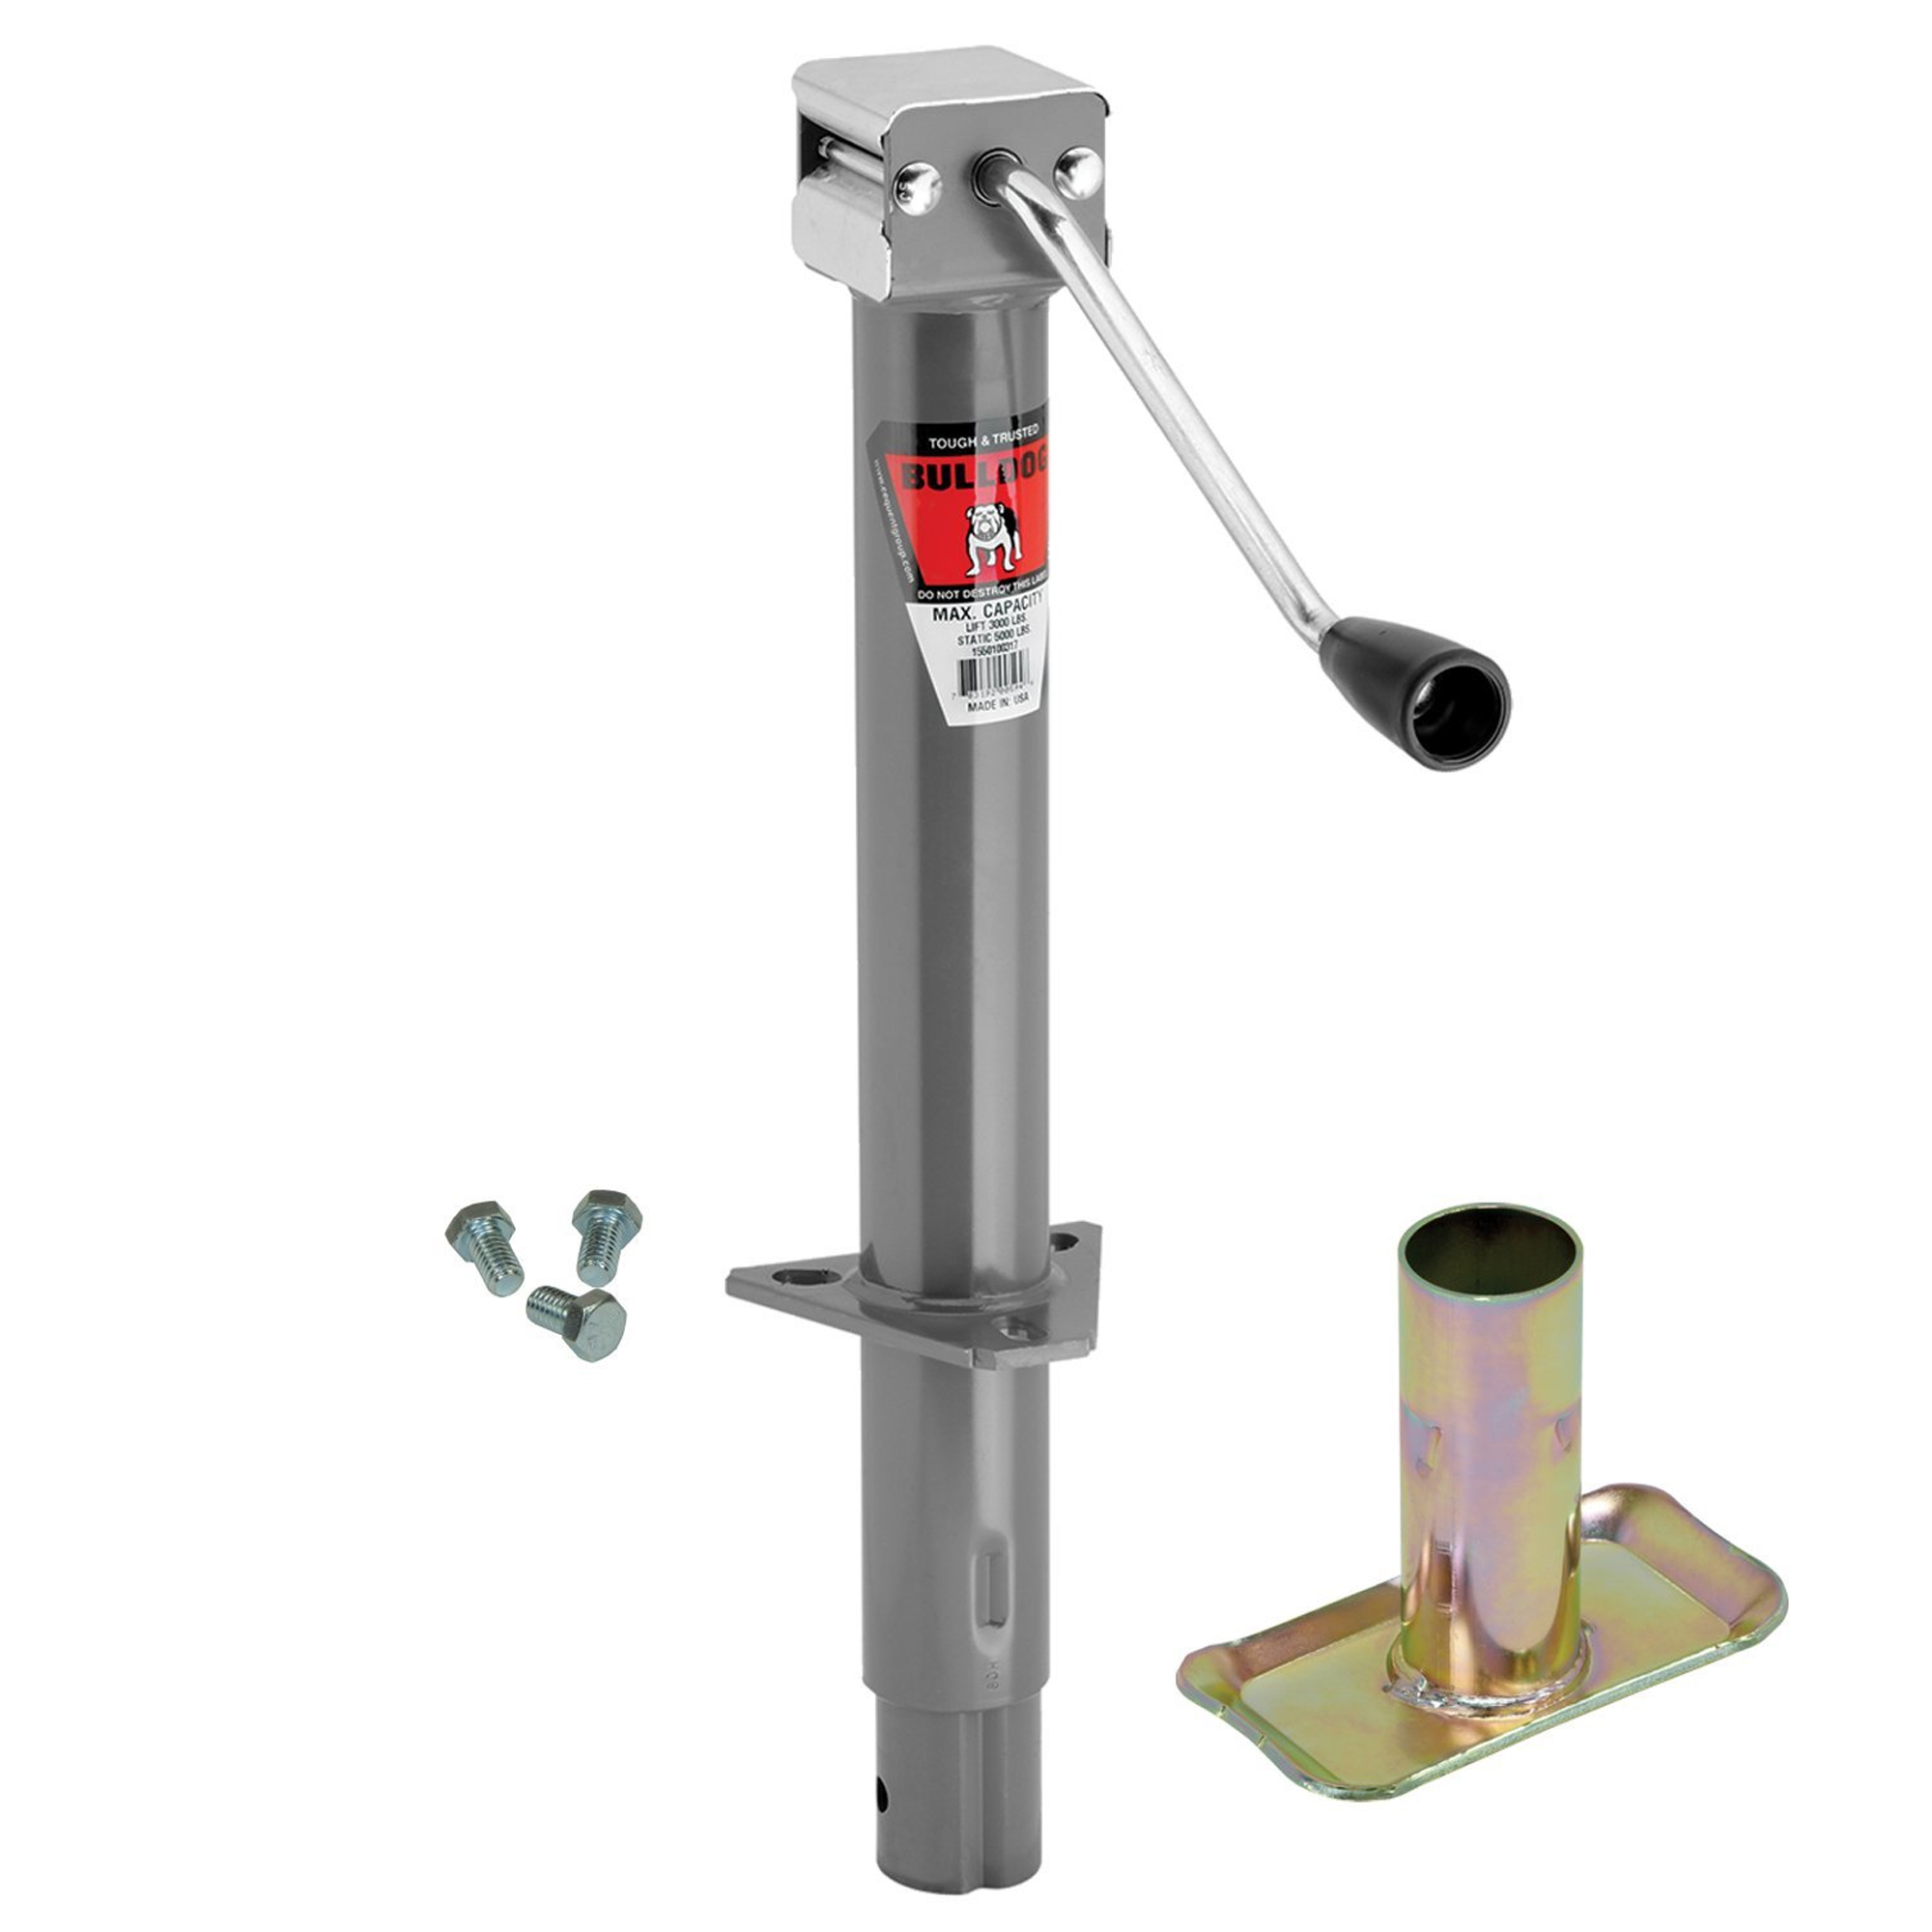 Bulldog Security A-Frame Trailer Jack with Foot and Mount...